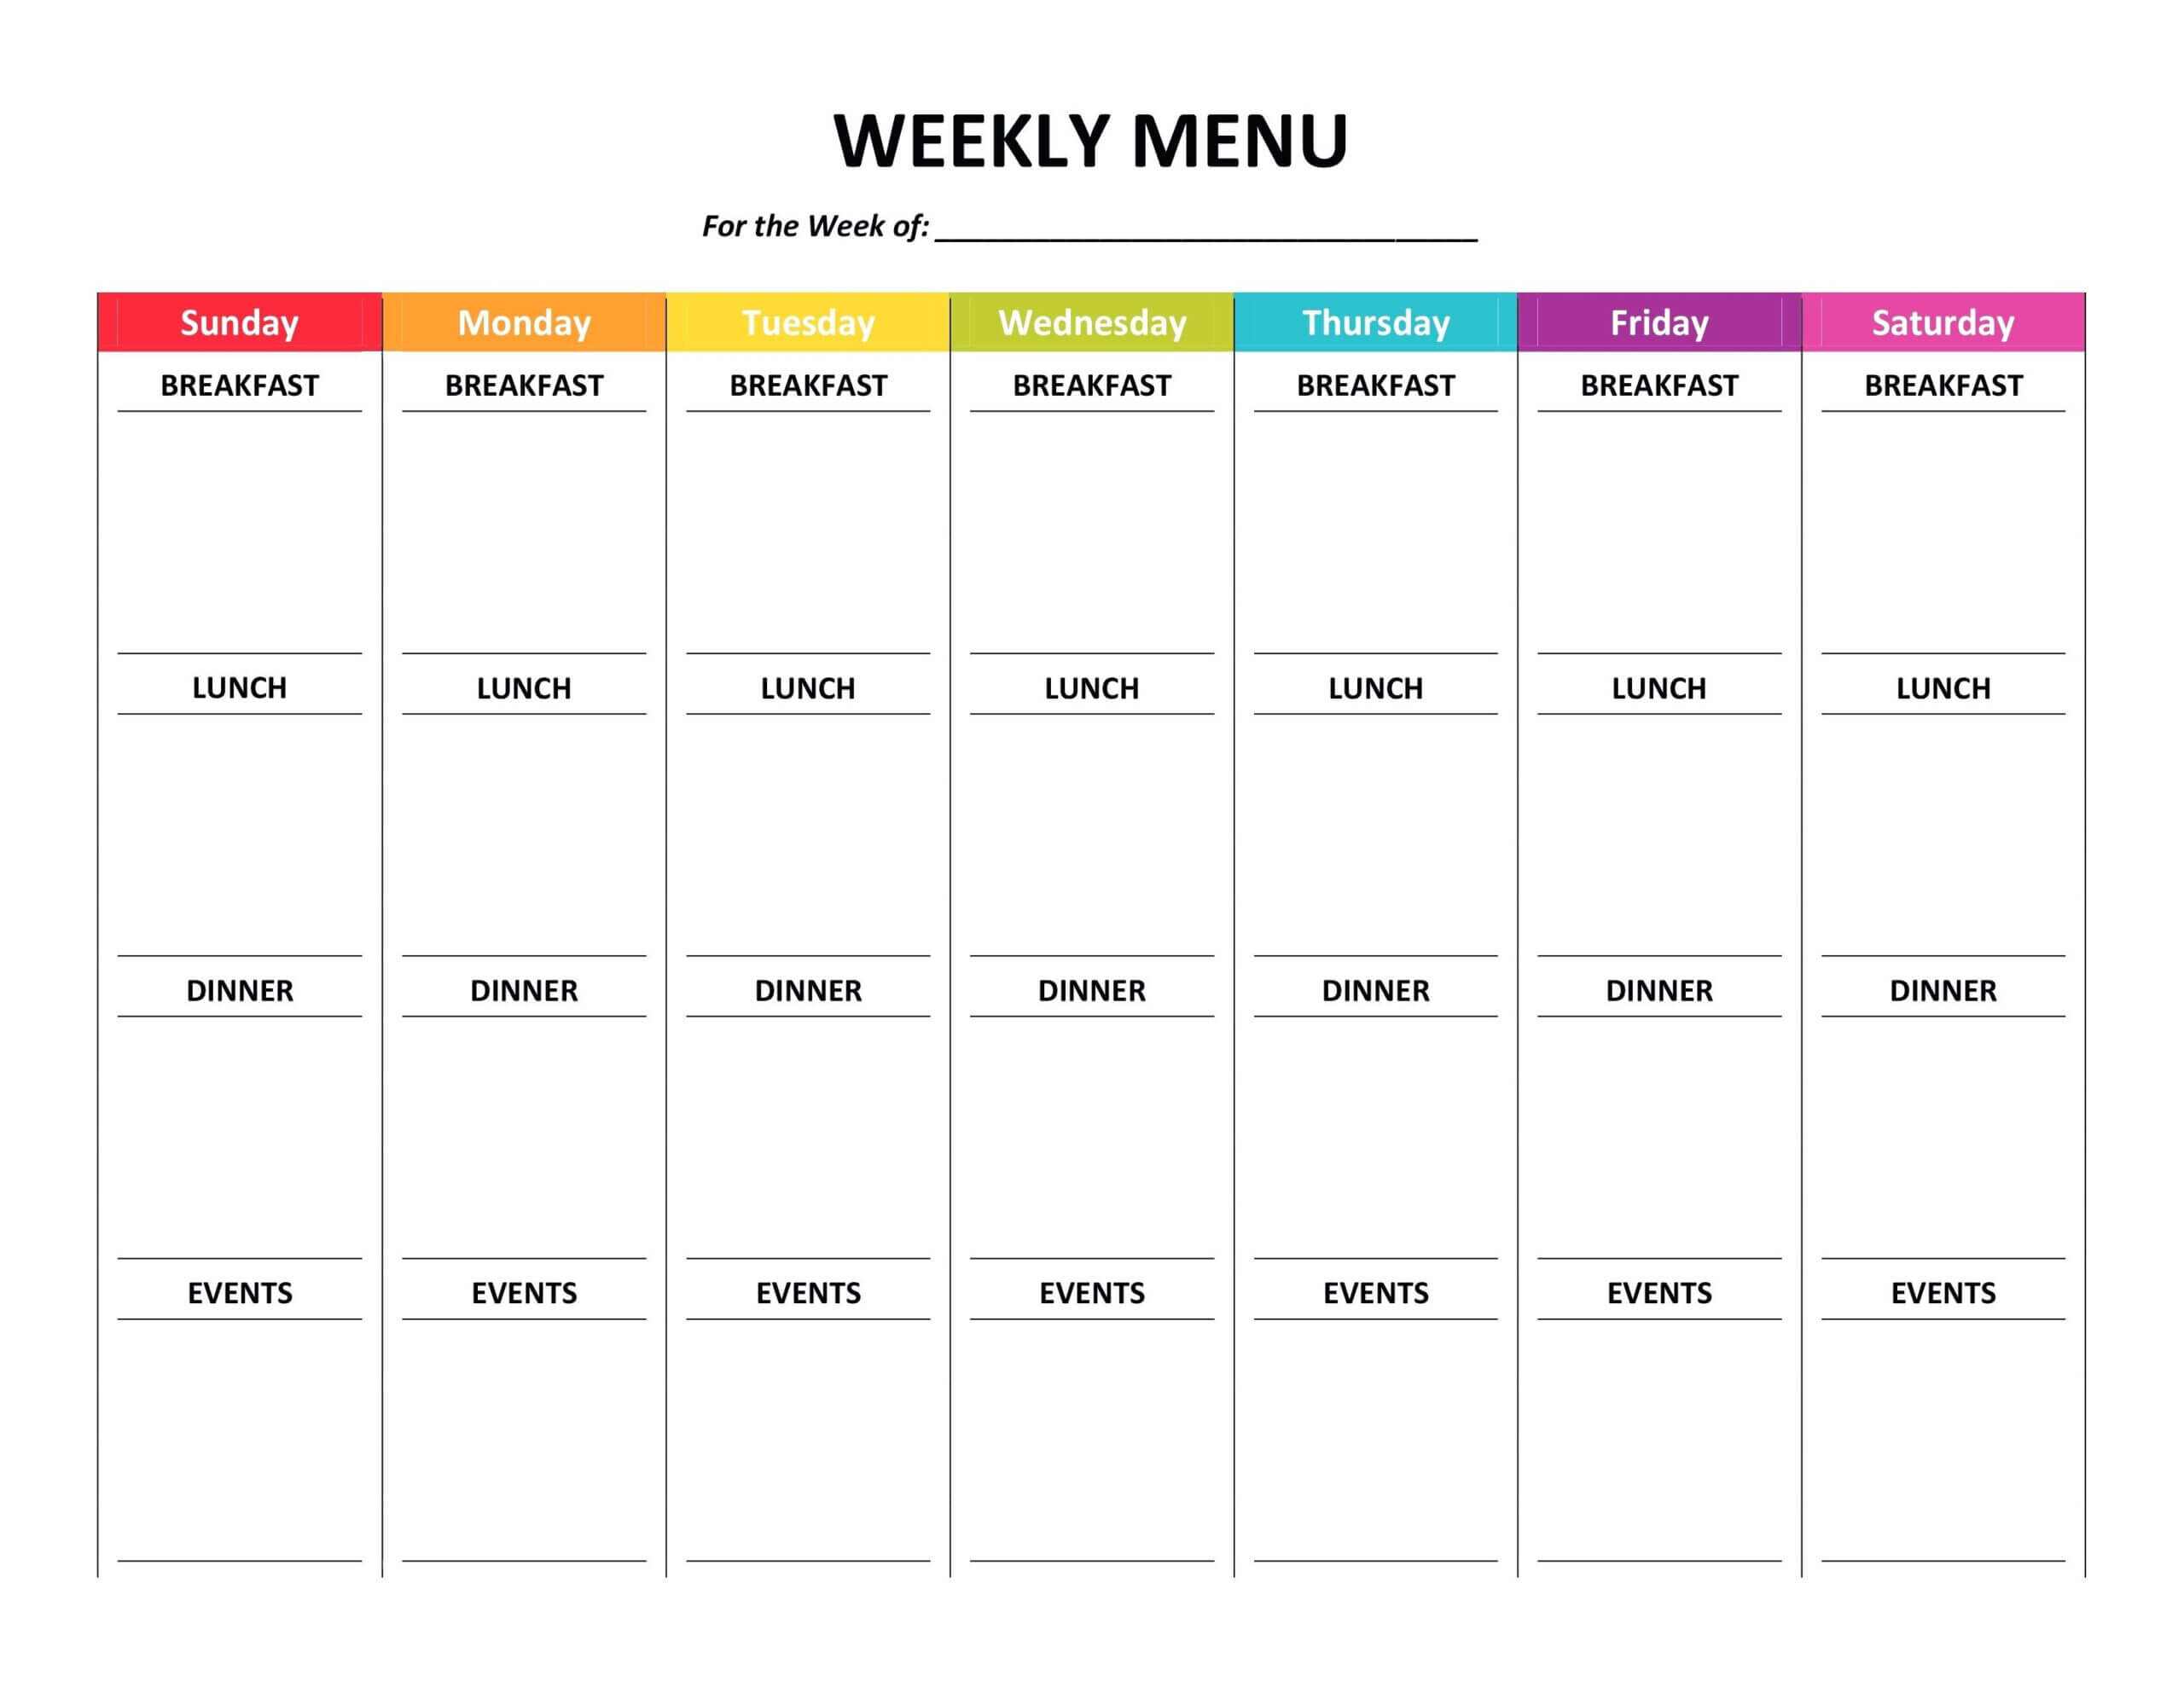 007 Meal Plan Template Word Weekly Menu Planner Fresh Of Intended For Weekly Meal Planner Template Word